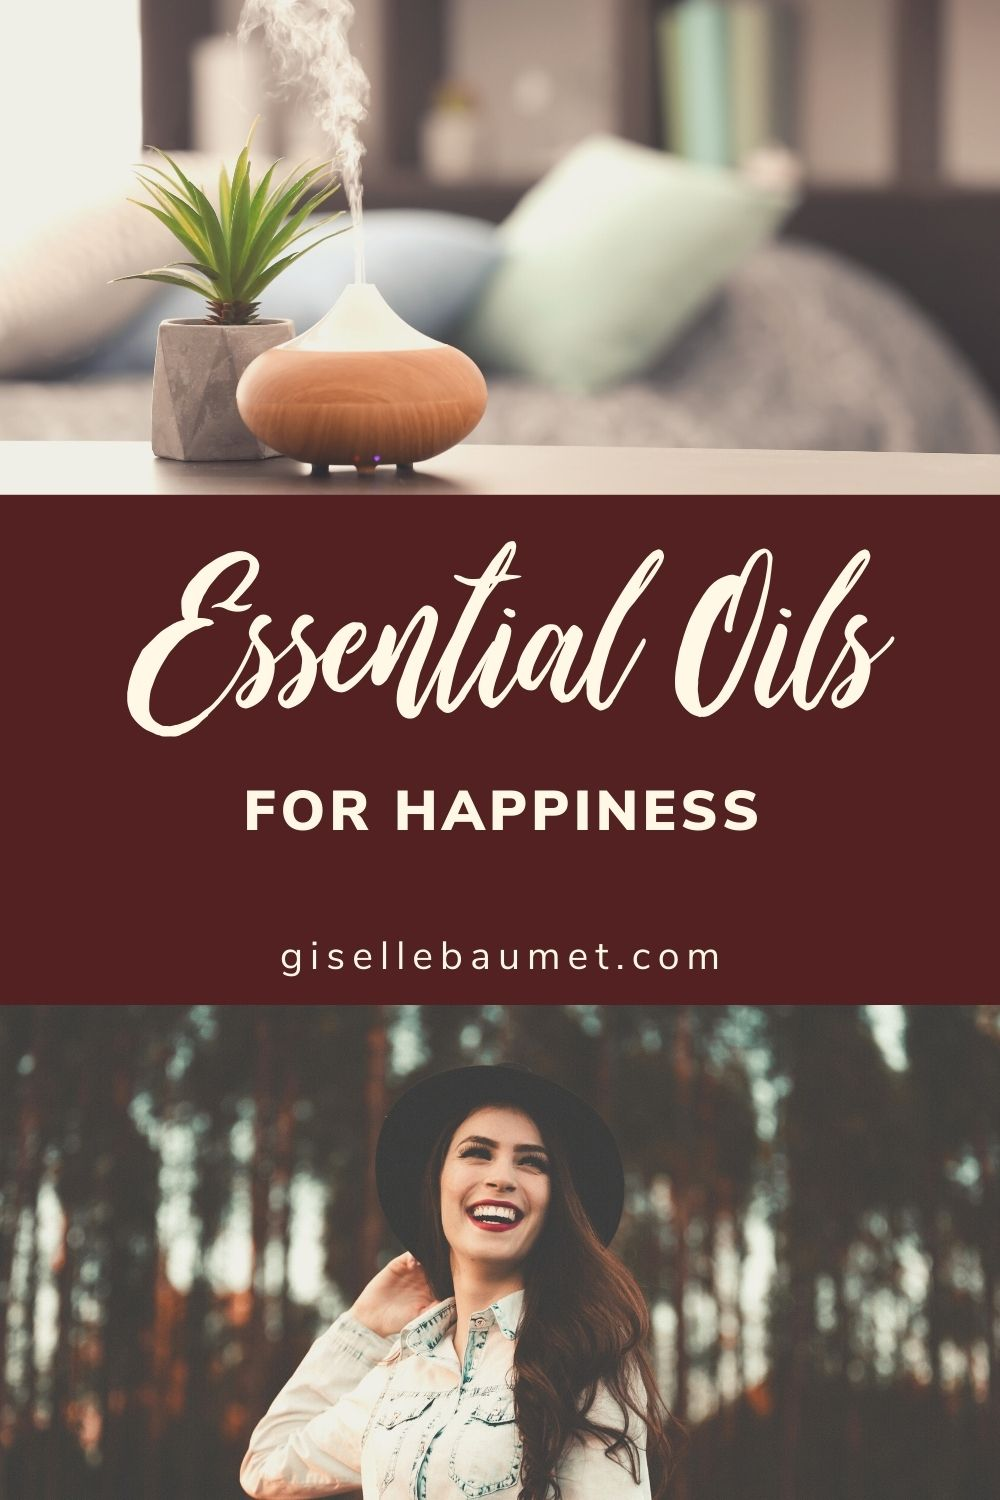 Essential oils for happiness